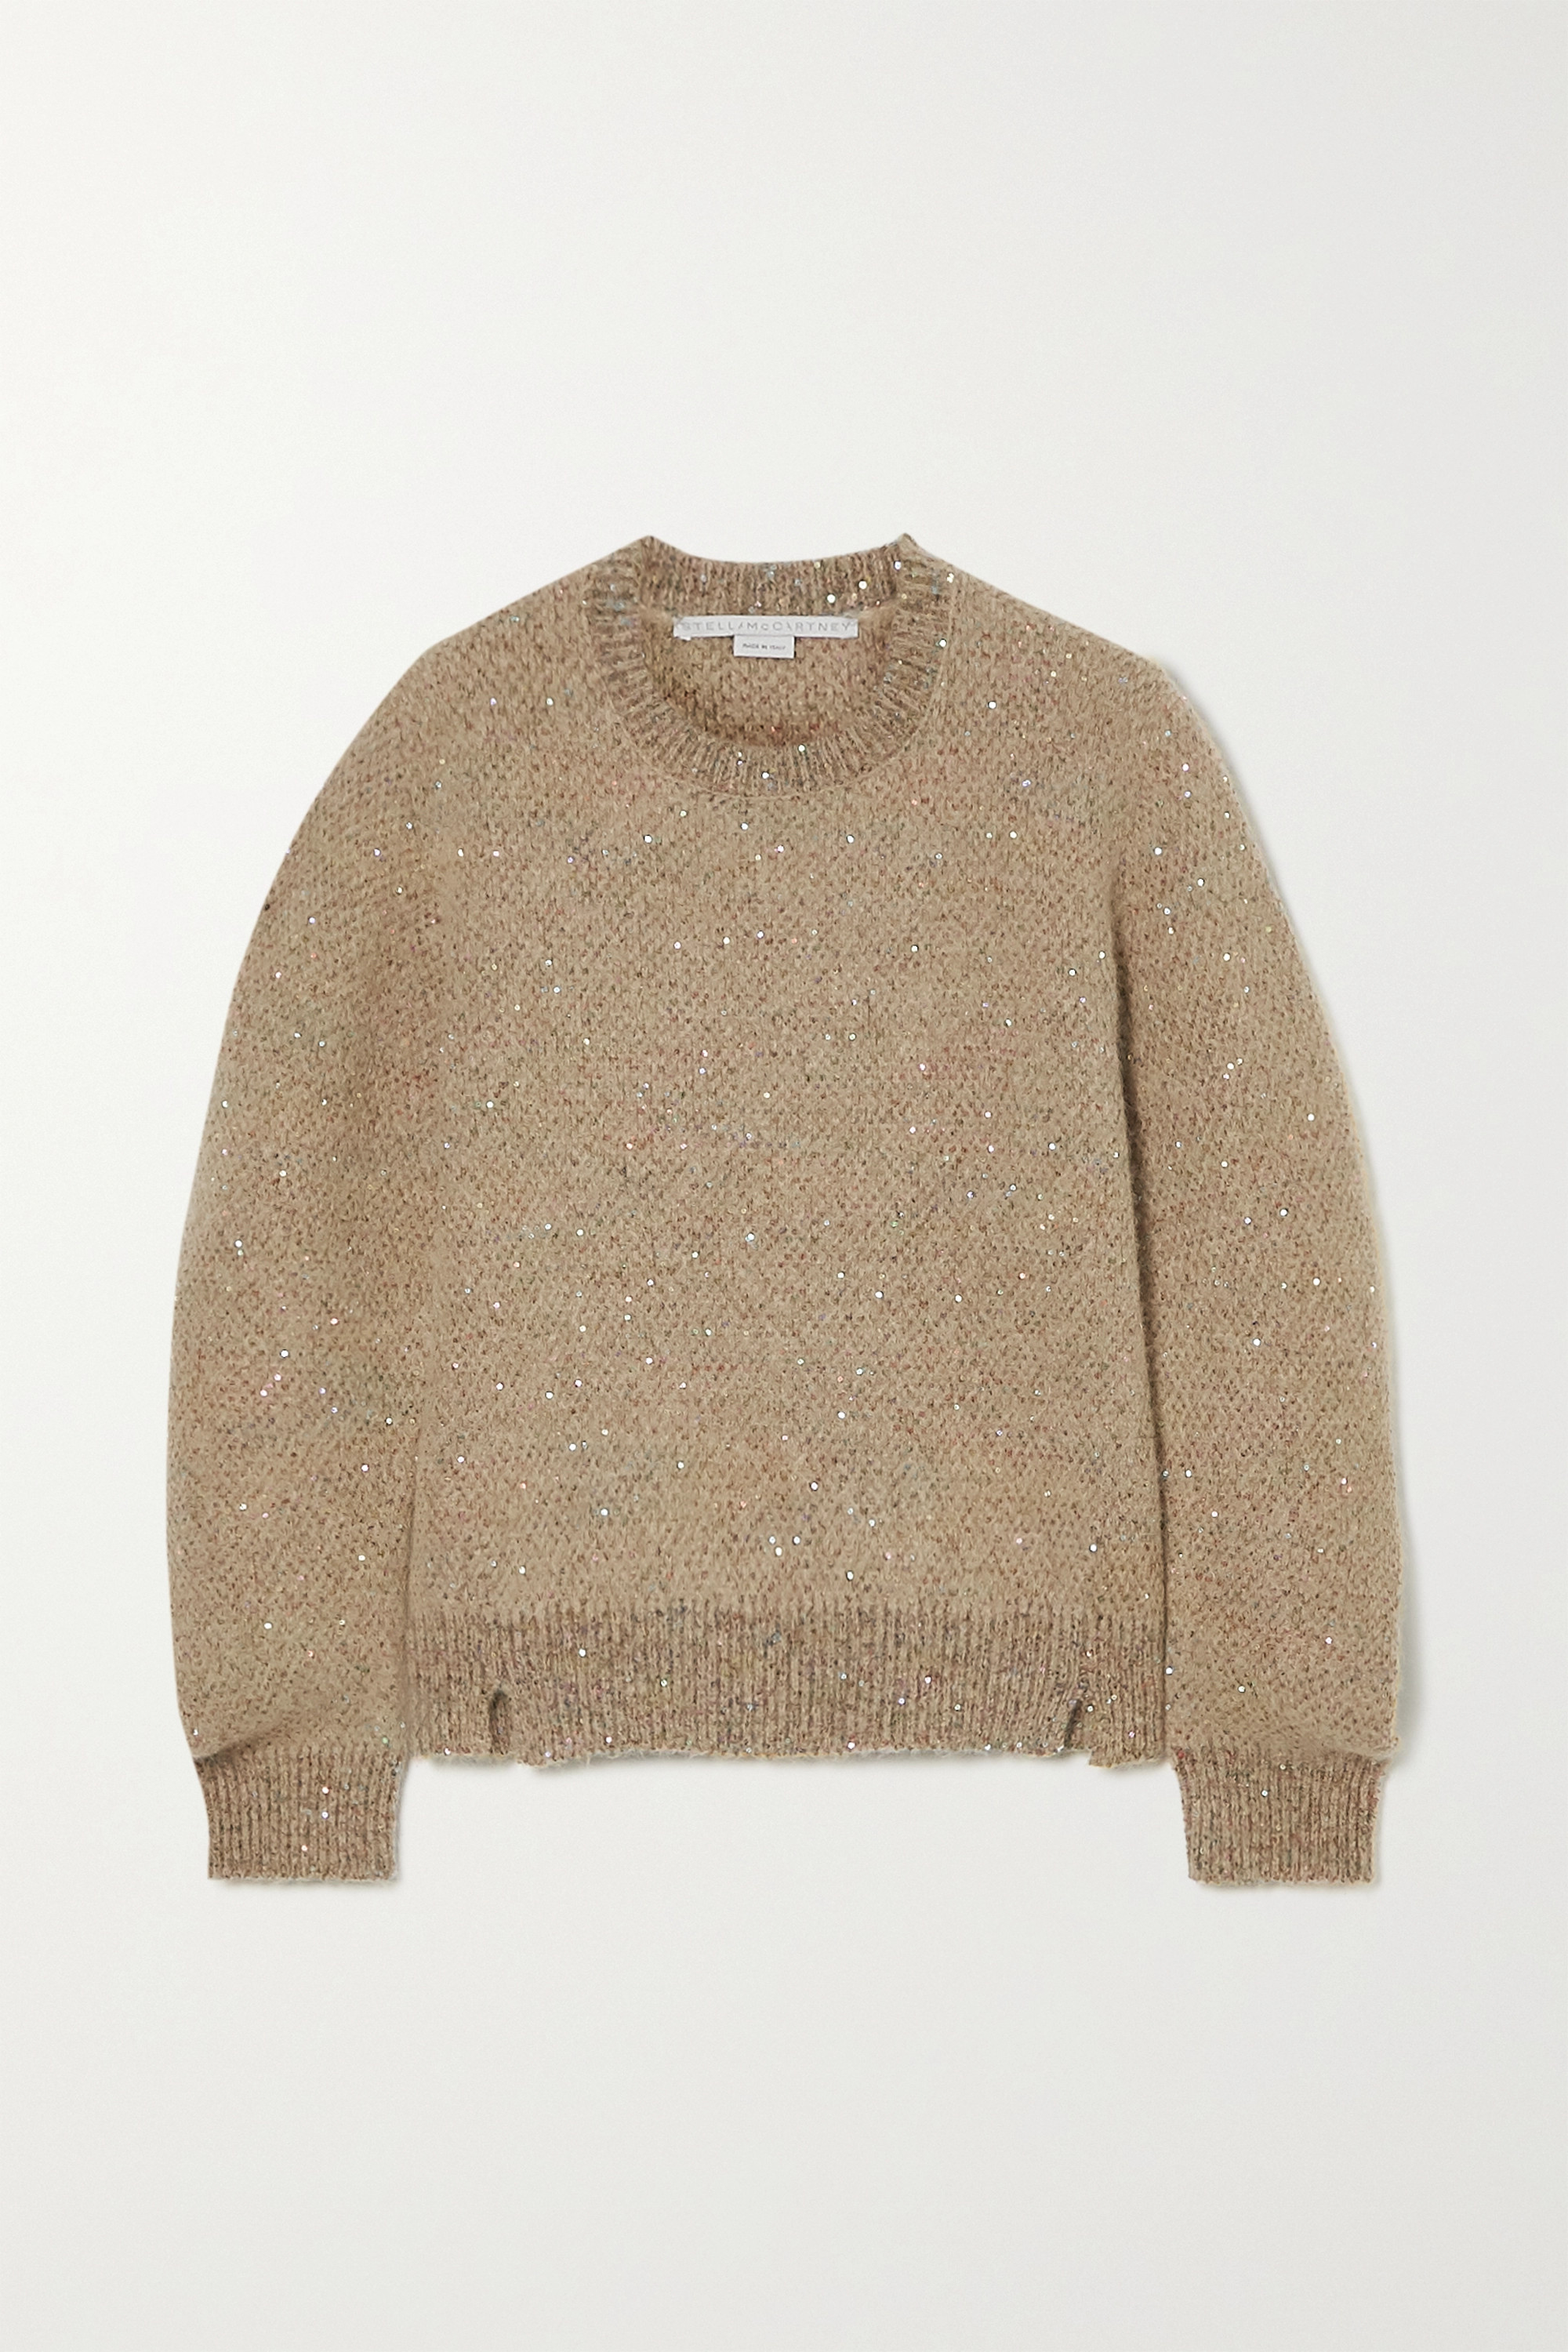 Stella McCartney Sequined knitted sweater